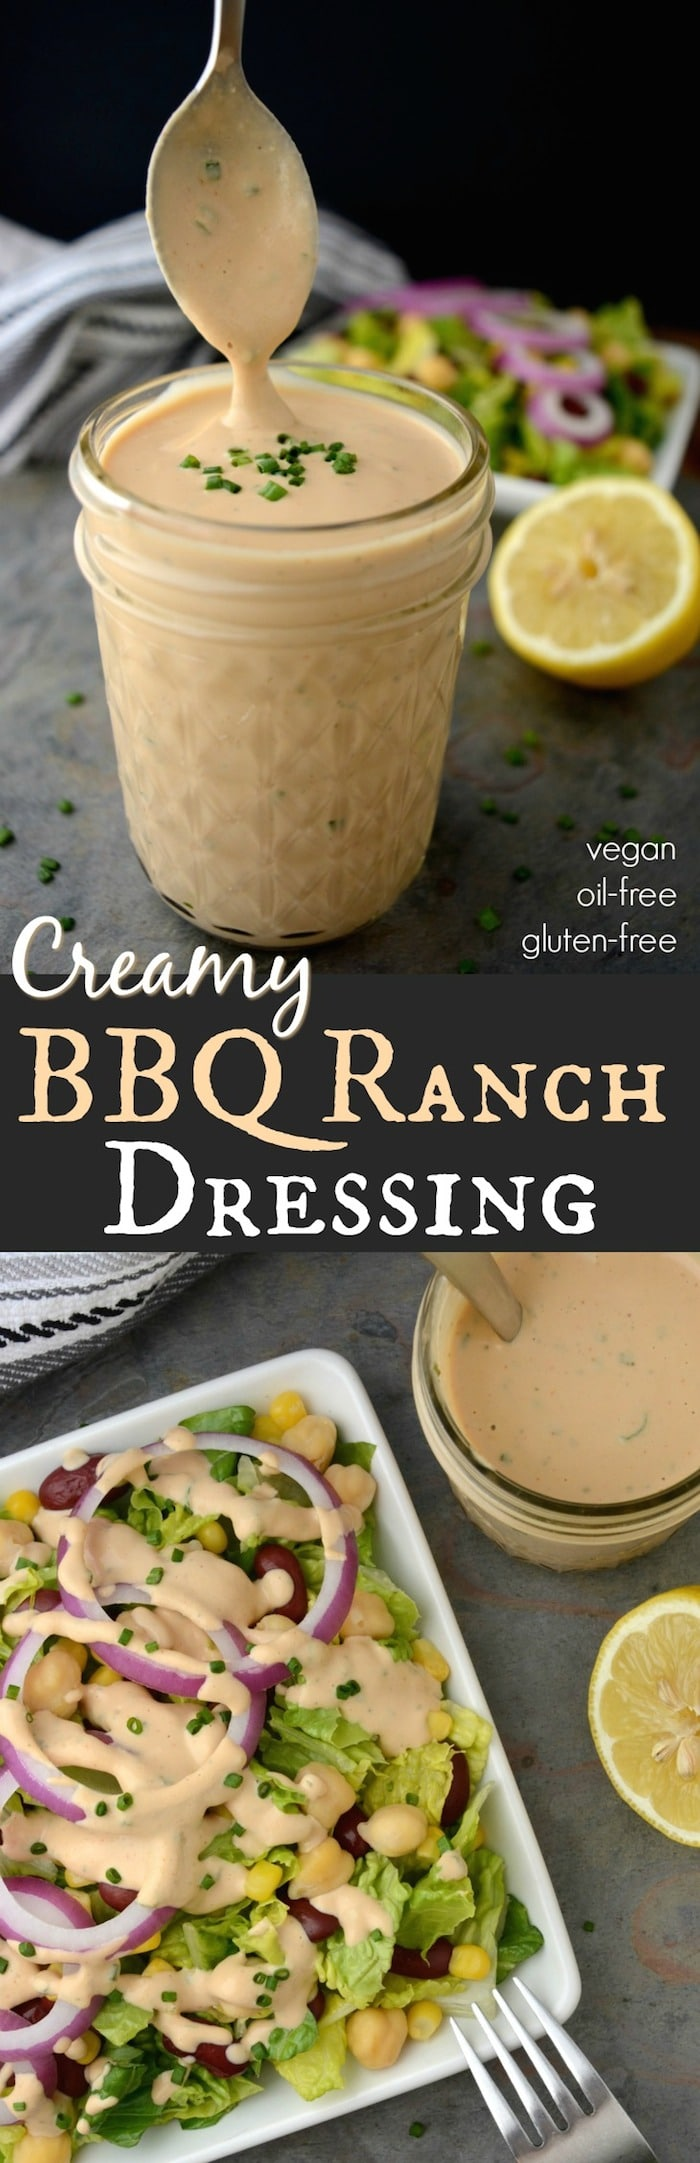 Creamy Vegan BBQ Ranch Dressing –A creamy dreamy dressing worth slathering on everything from salads to tacos & burritos! This healthy dressing is vegan, oil-free and gluten-free! It also has a nut-free option to make it 100% allergy friendly.